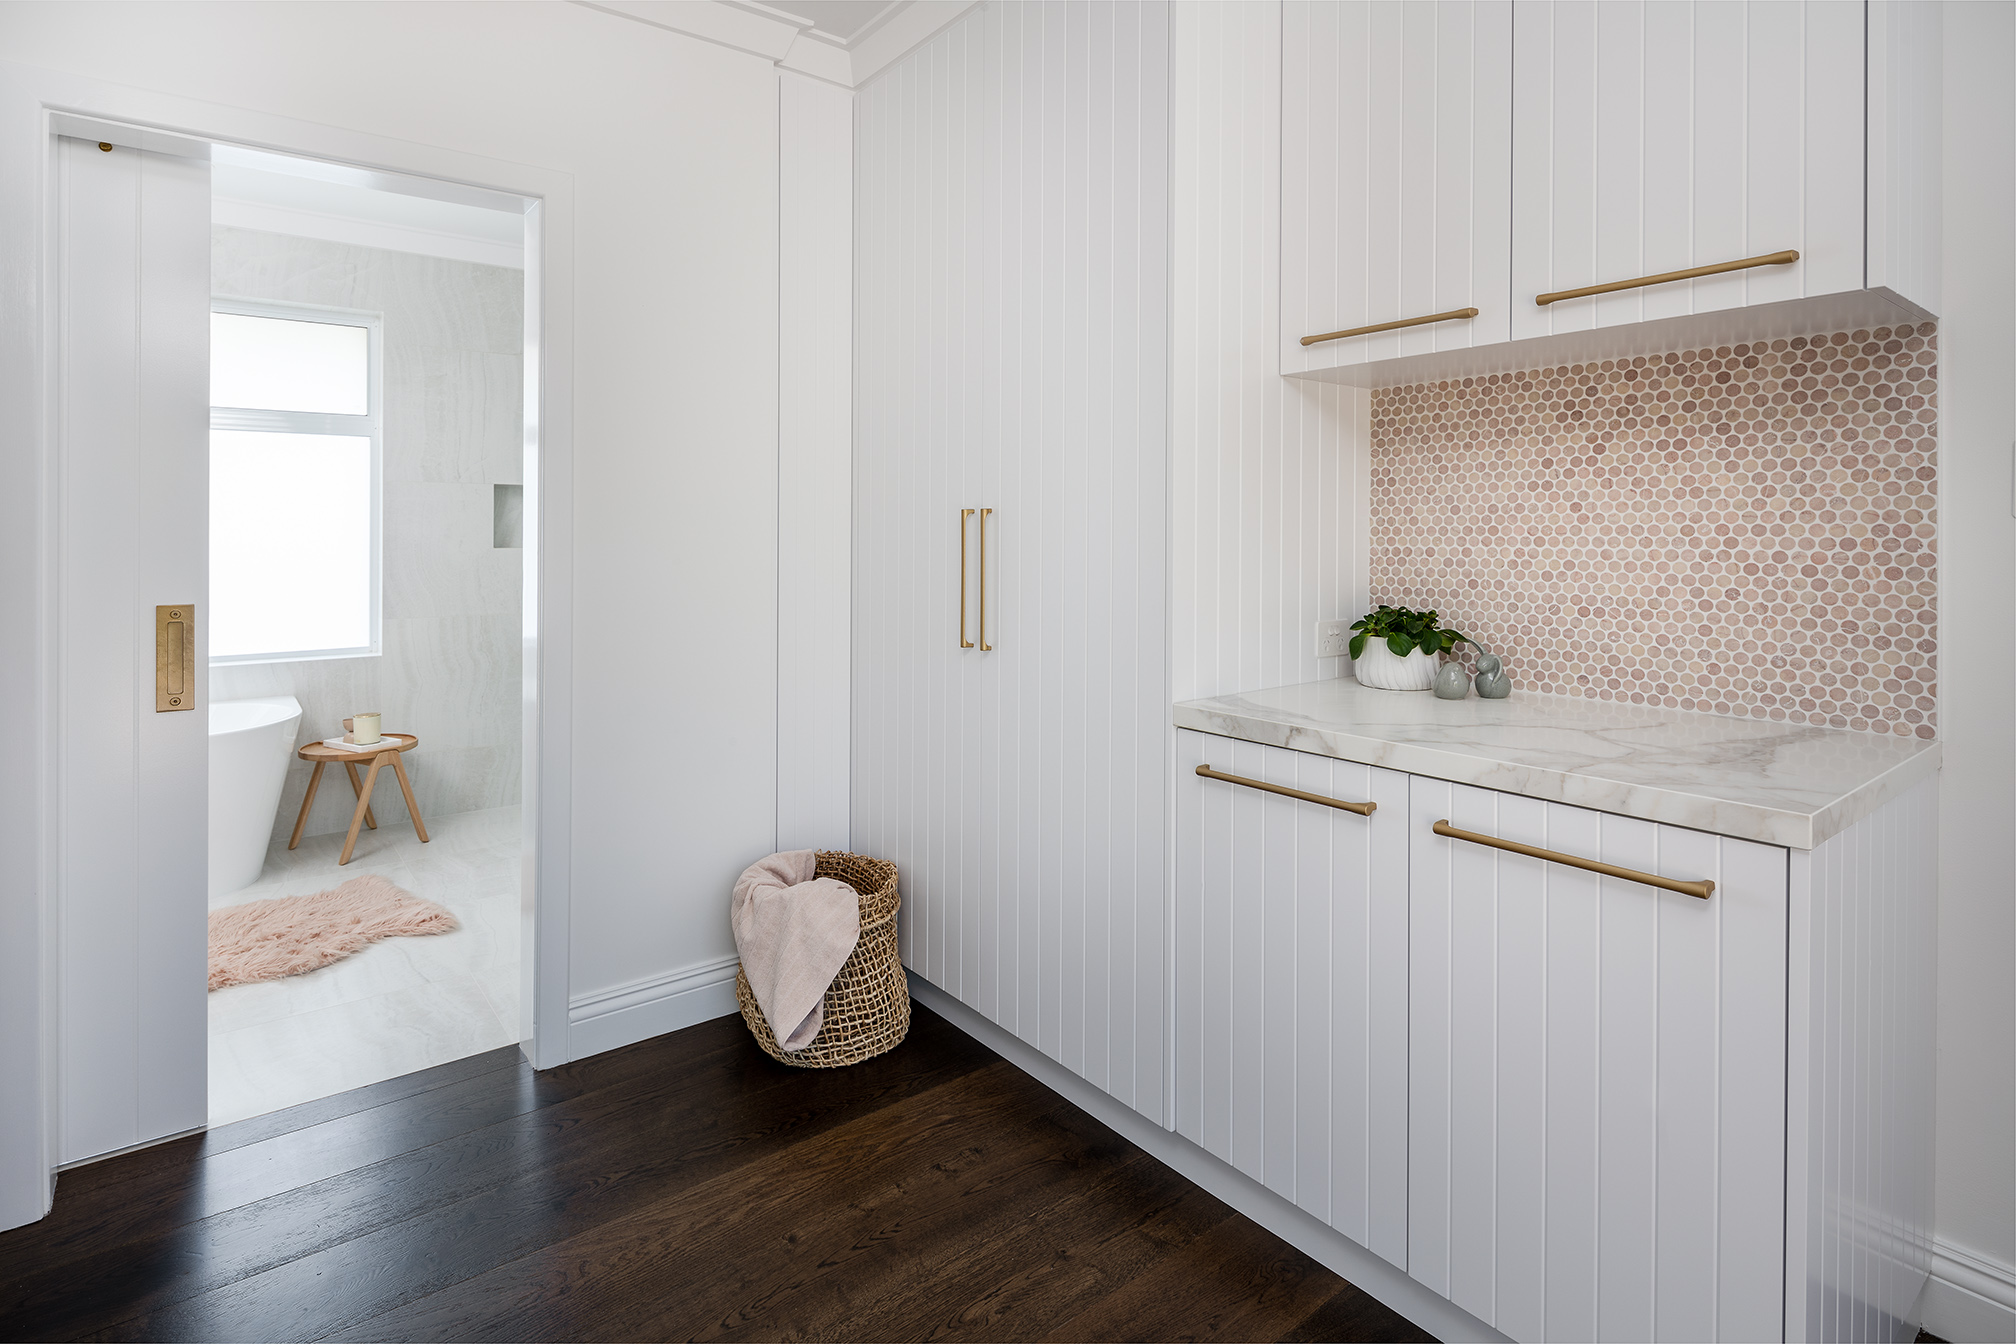 North Beach Coastal Barn Laundry with floor to ceiling cabinetry and bench space